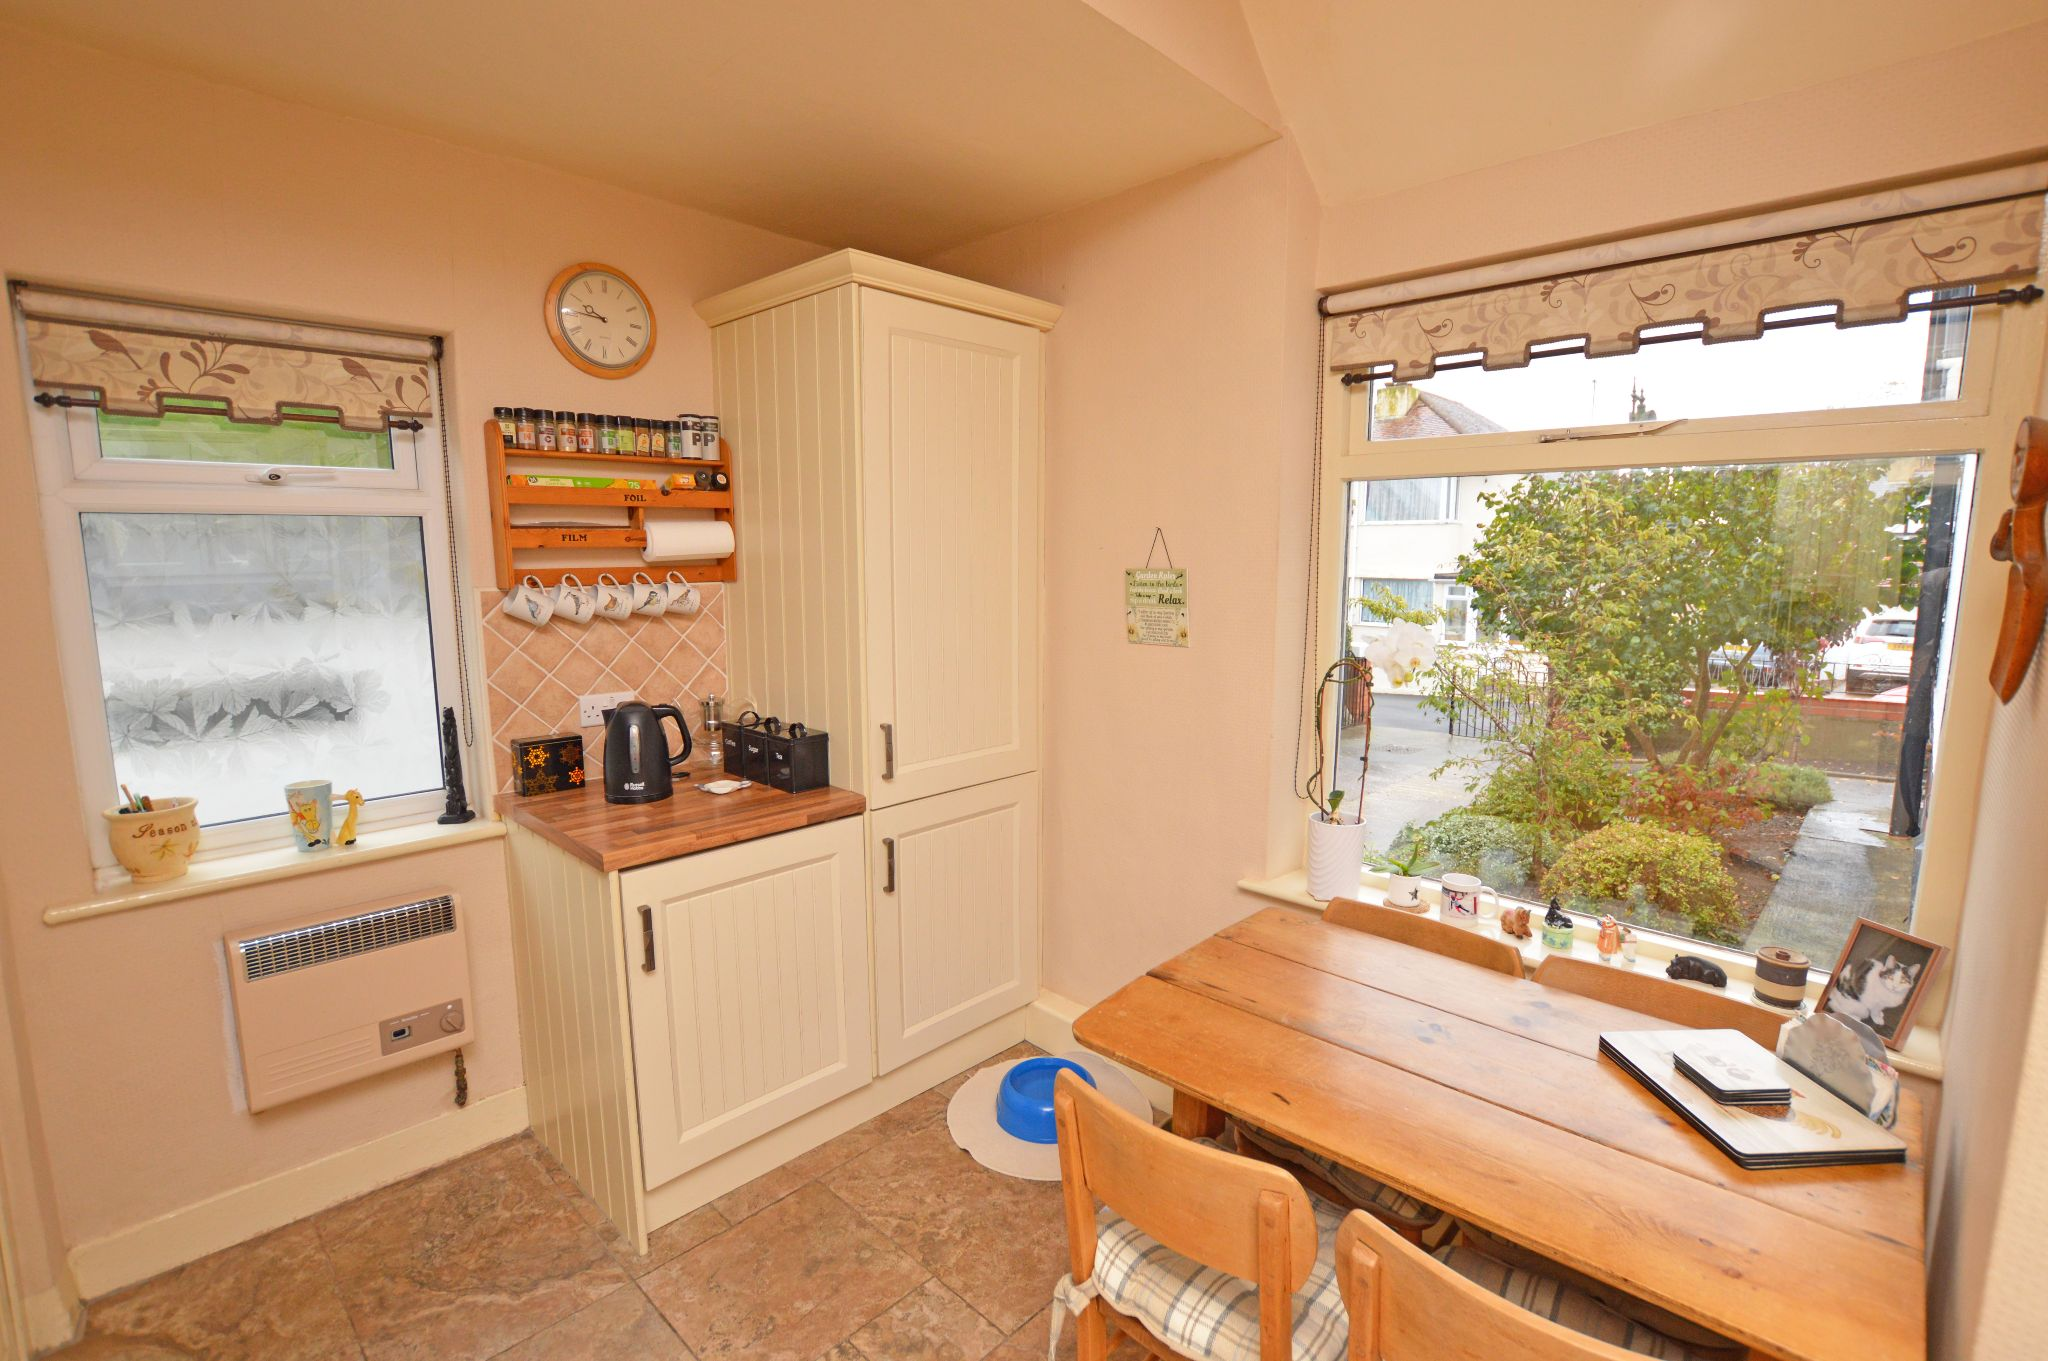 4 bedroom detached house For Sale in Abergele - Kitchen/Breakfast Area